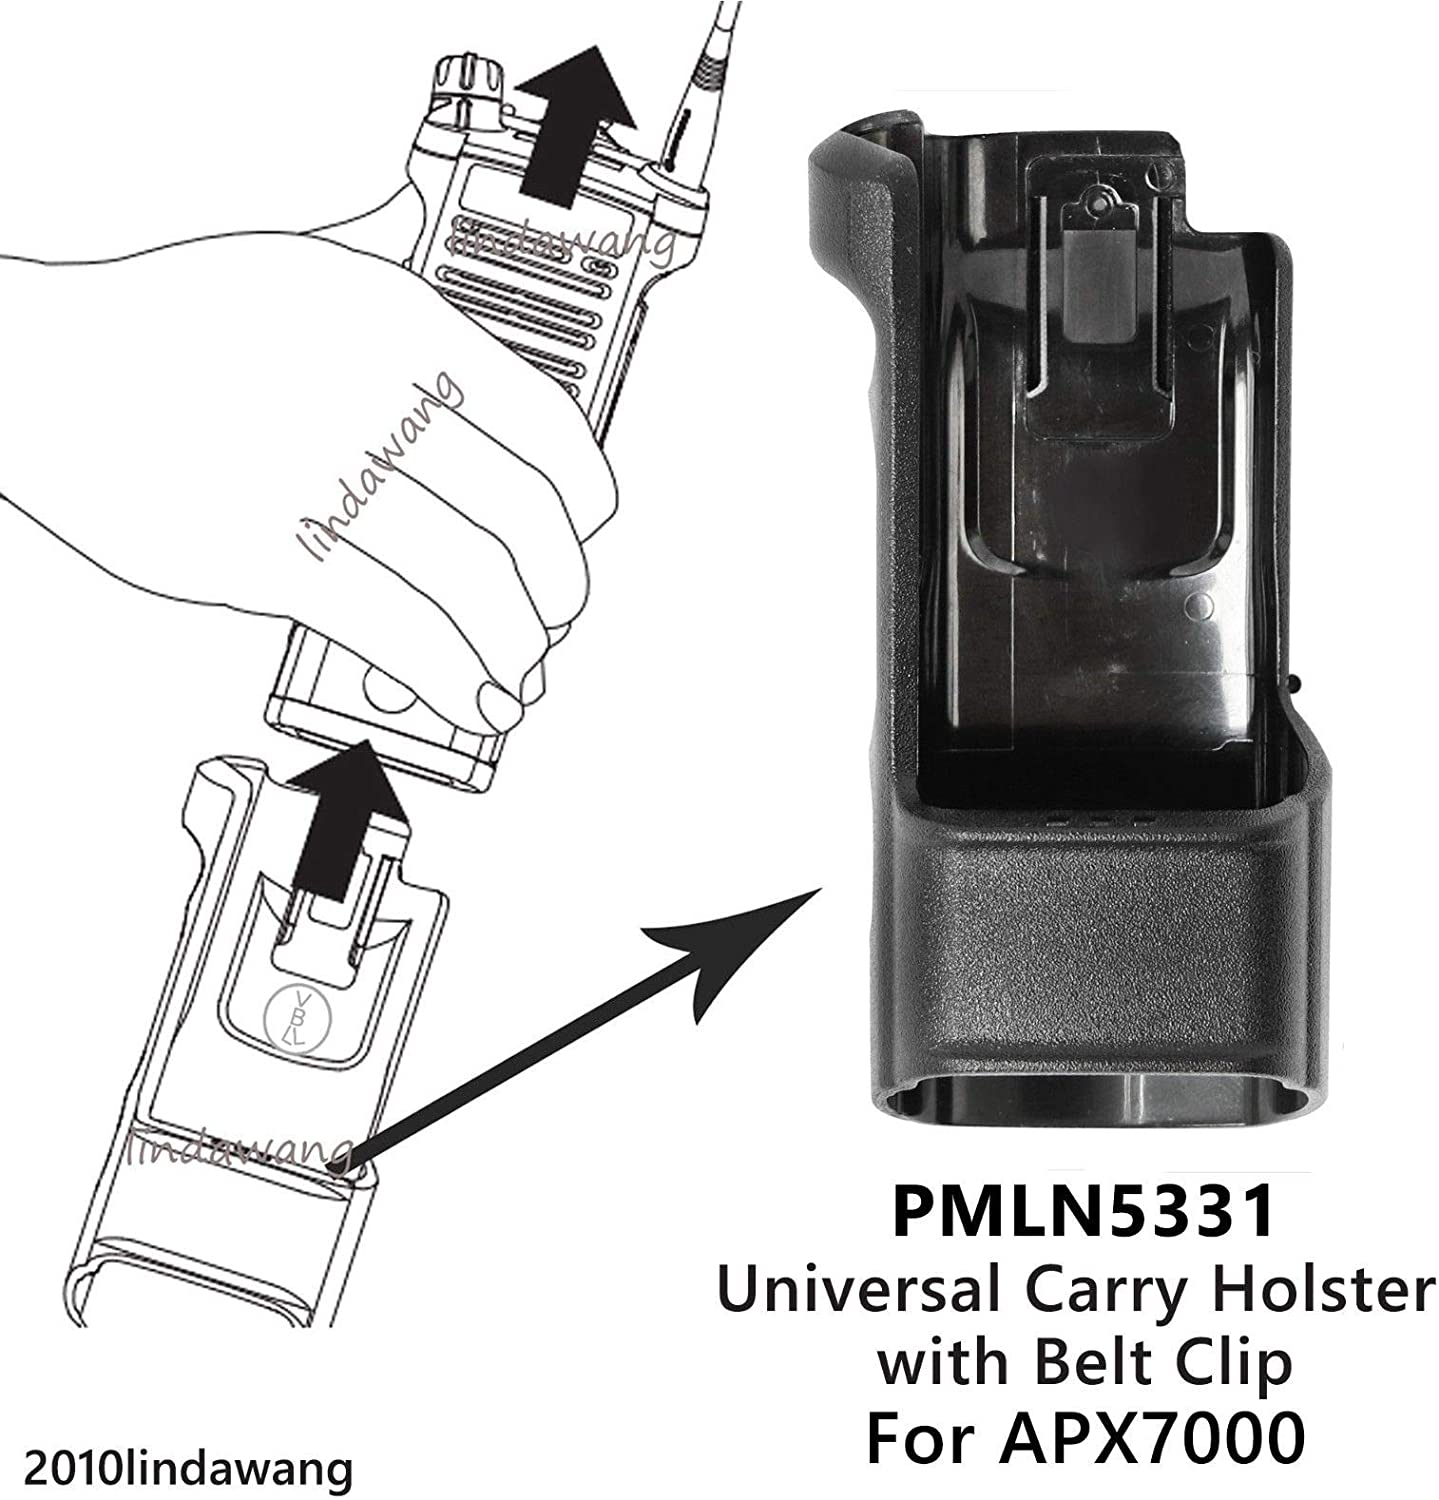 PMLN5331 Universal Carry Holster with Belt clip for Motorola APX7000 2Way Radio